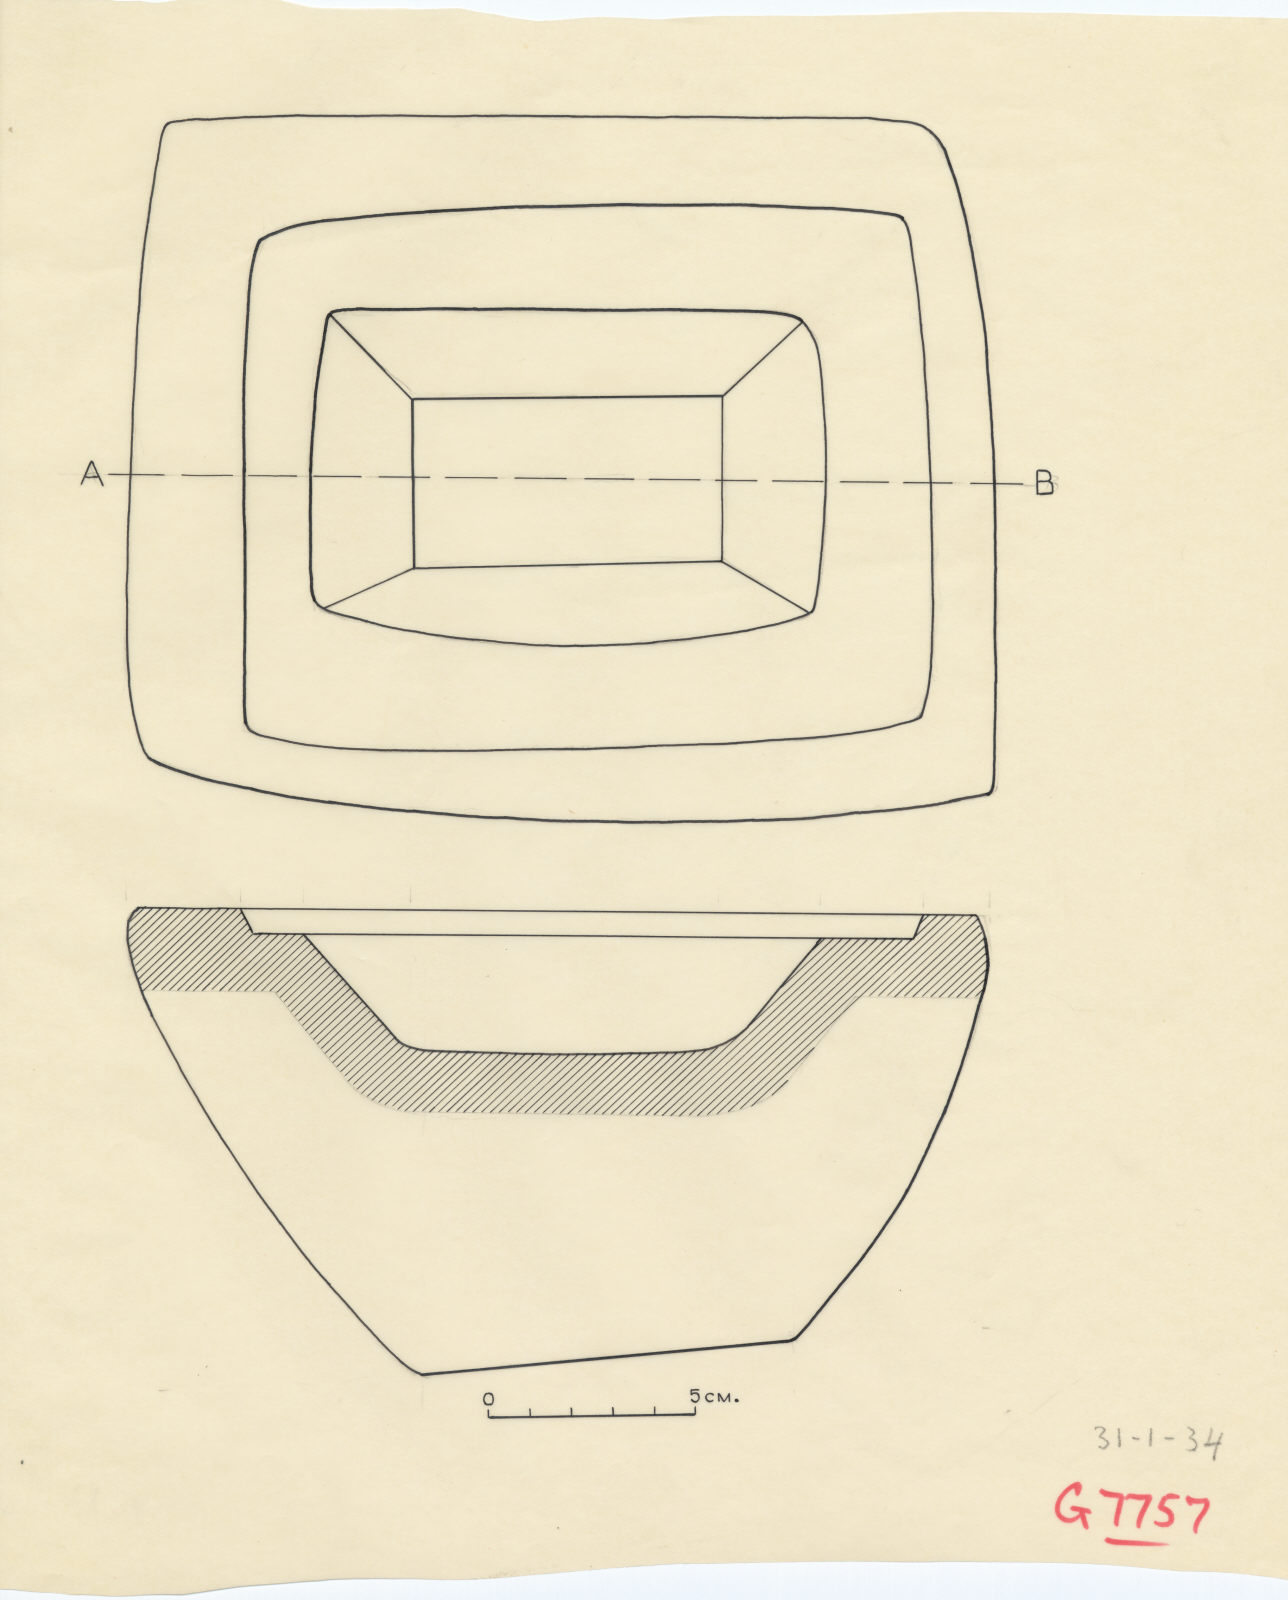 Drawings: offering basin from G 7757